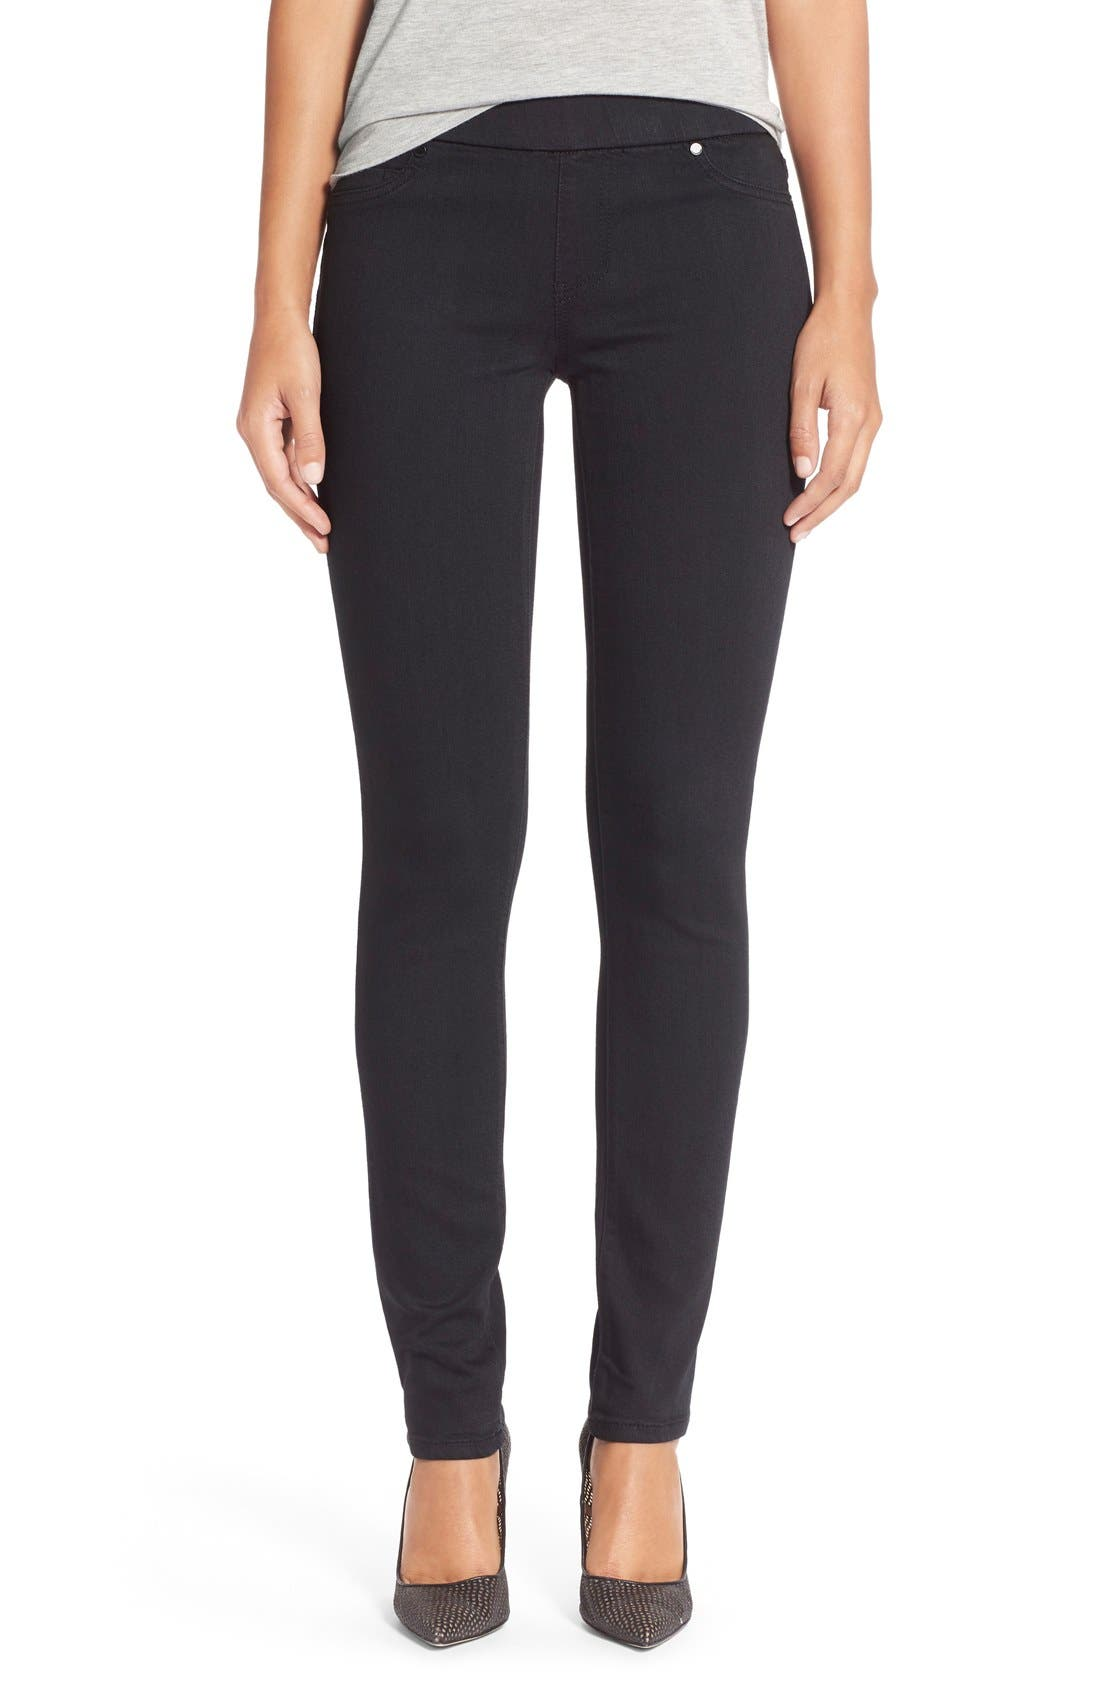 Main Image - Liverpool Jeans Company 'Sienna' Pull-On Knit Denim Leggings (Petite)